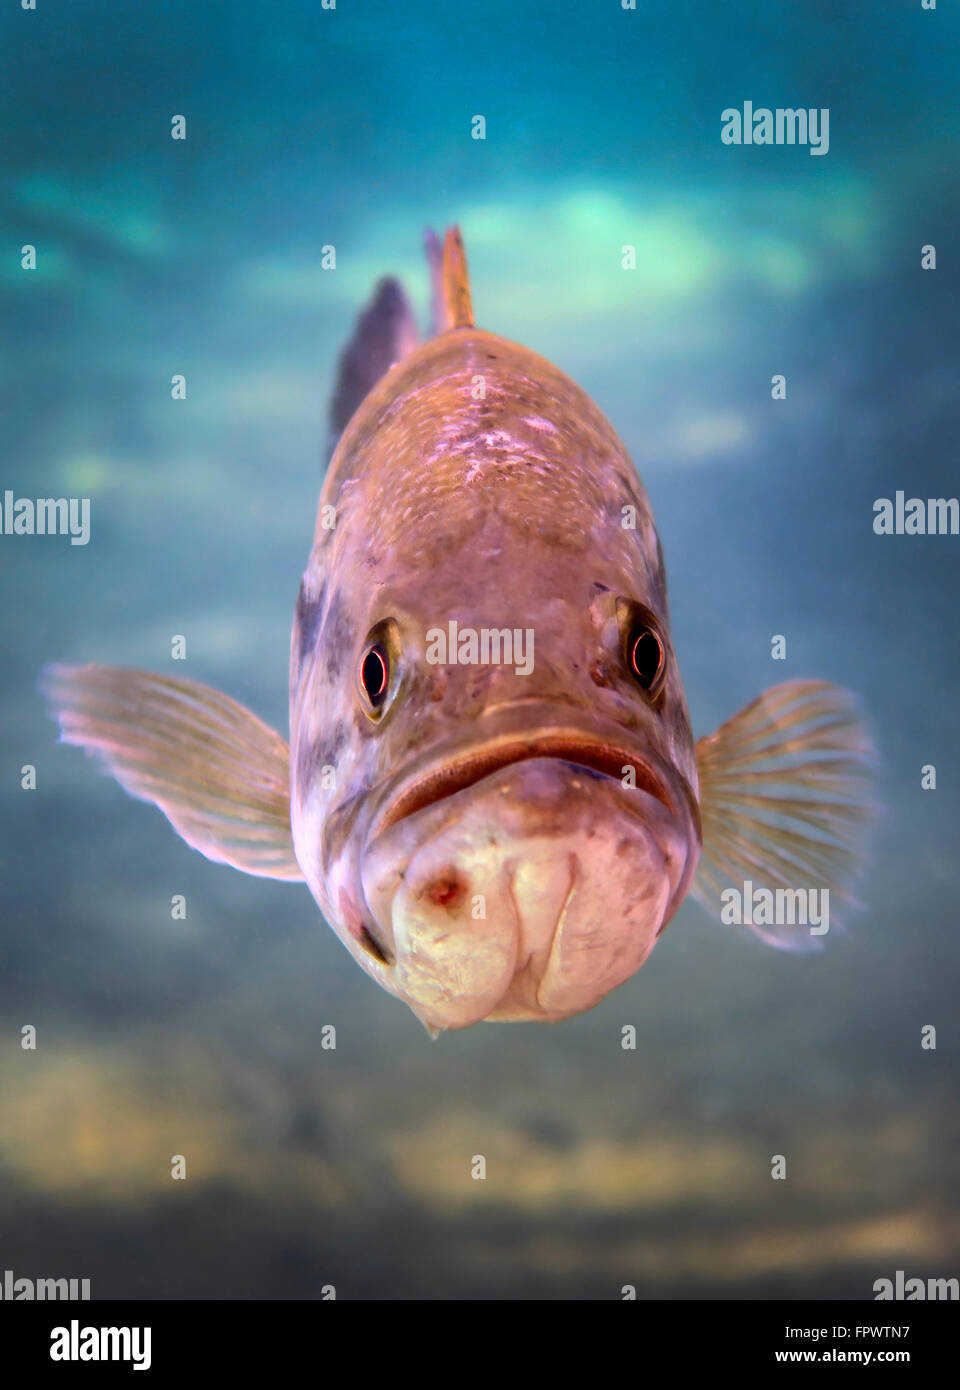 A largemouth bass faces off with the underwater photographer in Ponce de Leon Springs, Florida. - Stock Image